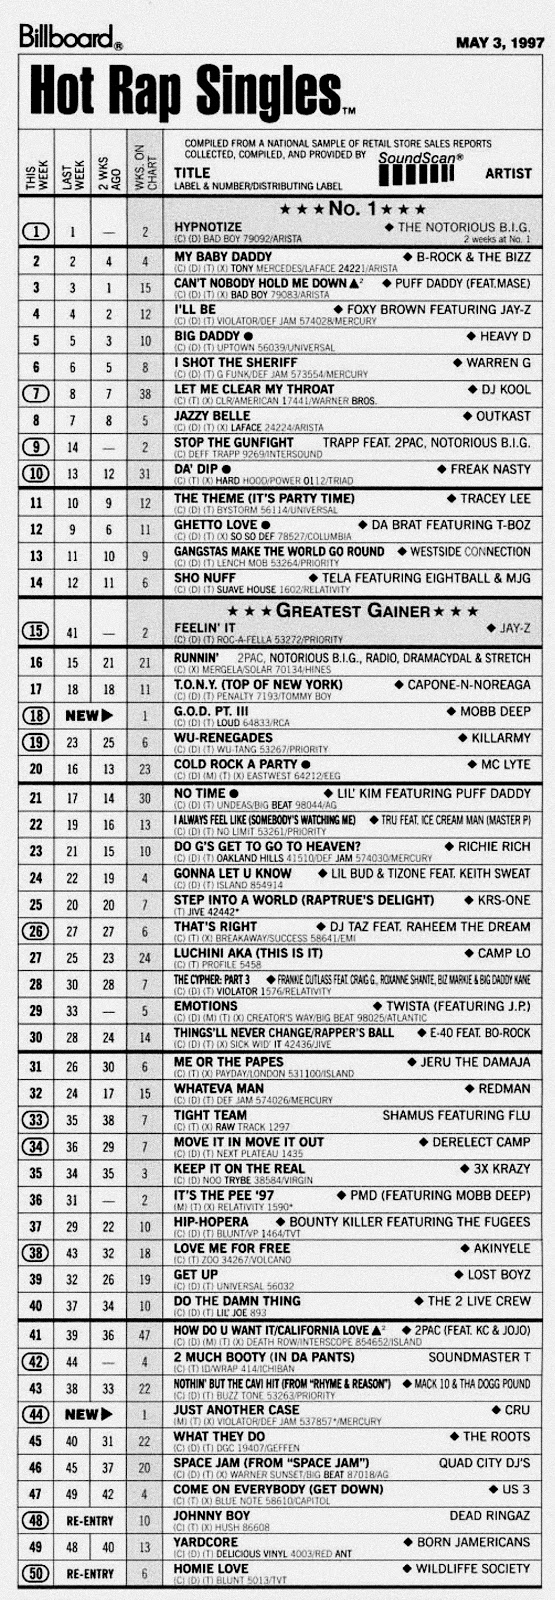 Billboard: Hot Rap Singles (May 3, 1997) Soundscan